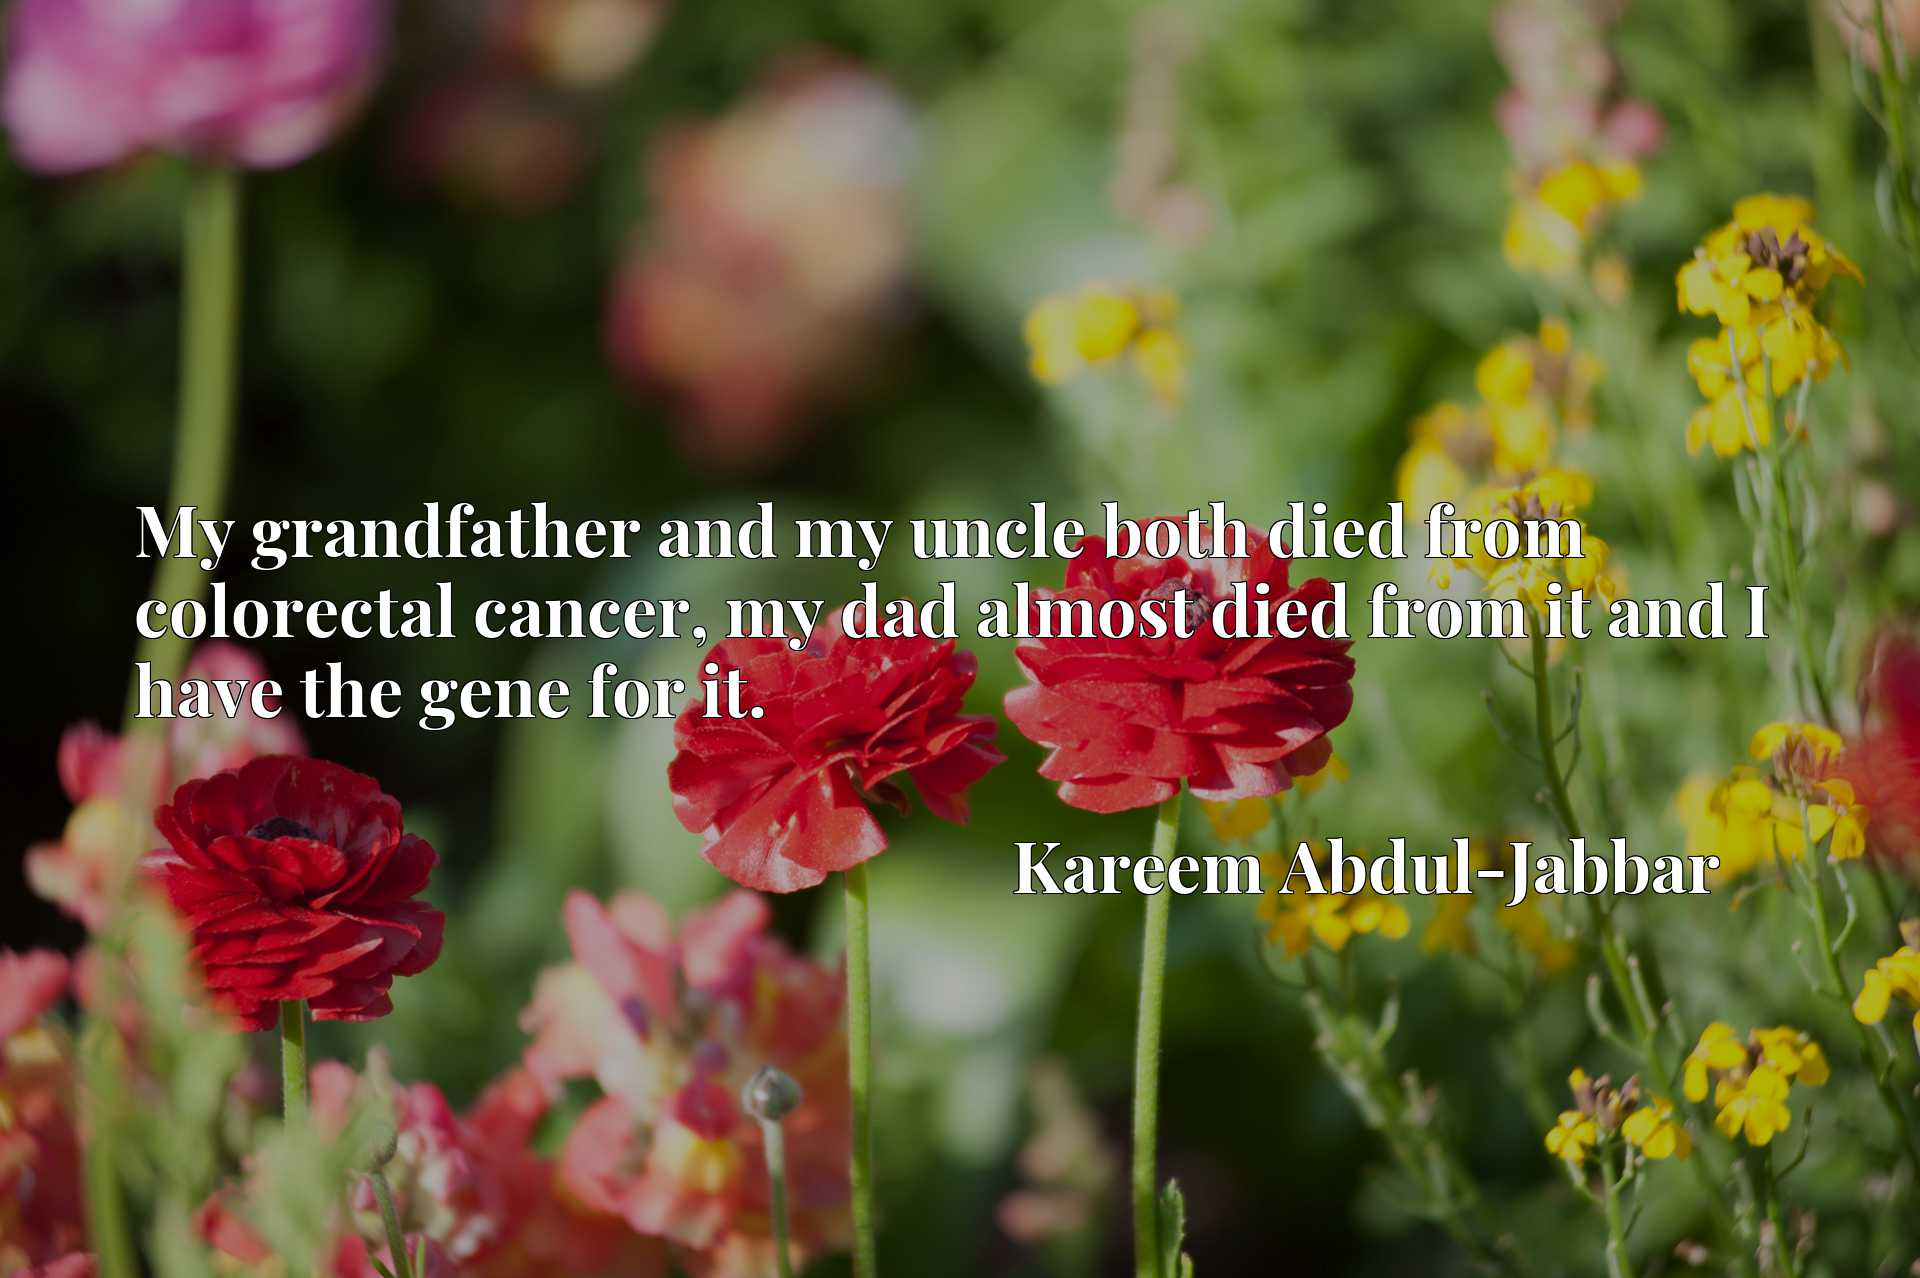 My grandfather and my uncle both died from colorectal cancer, my dad almost died from it and I have the gene for it.